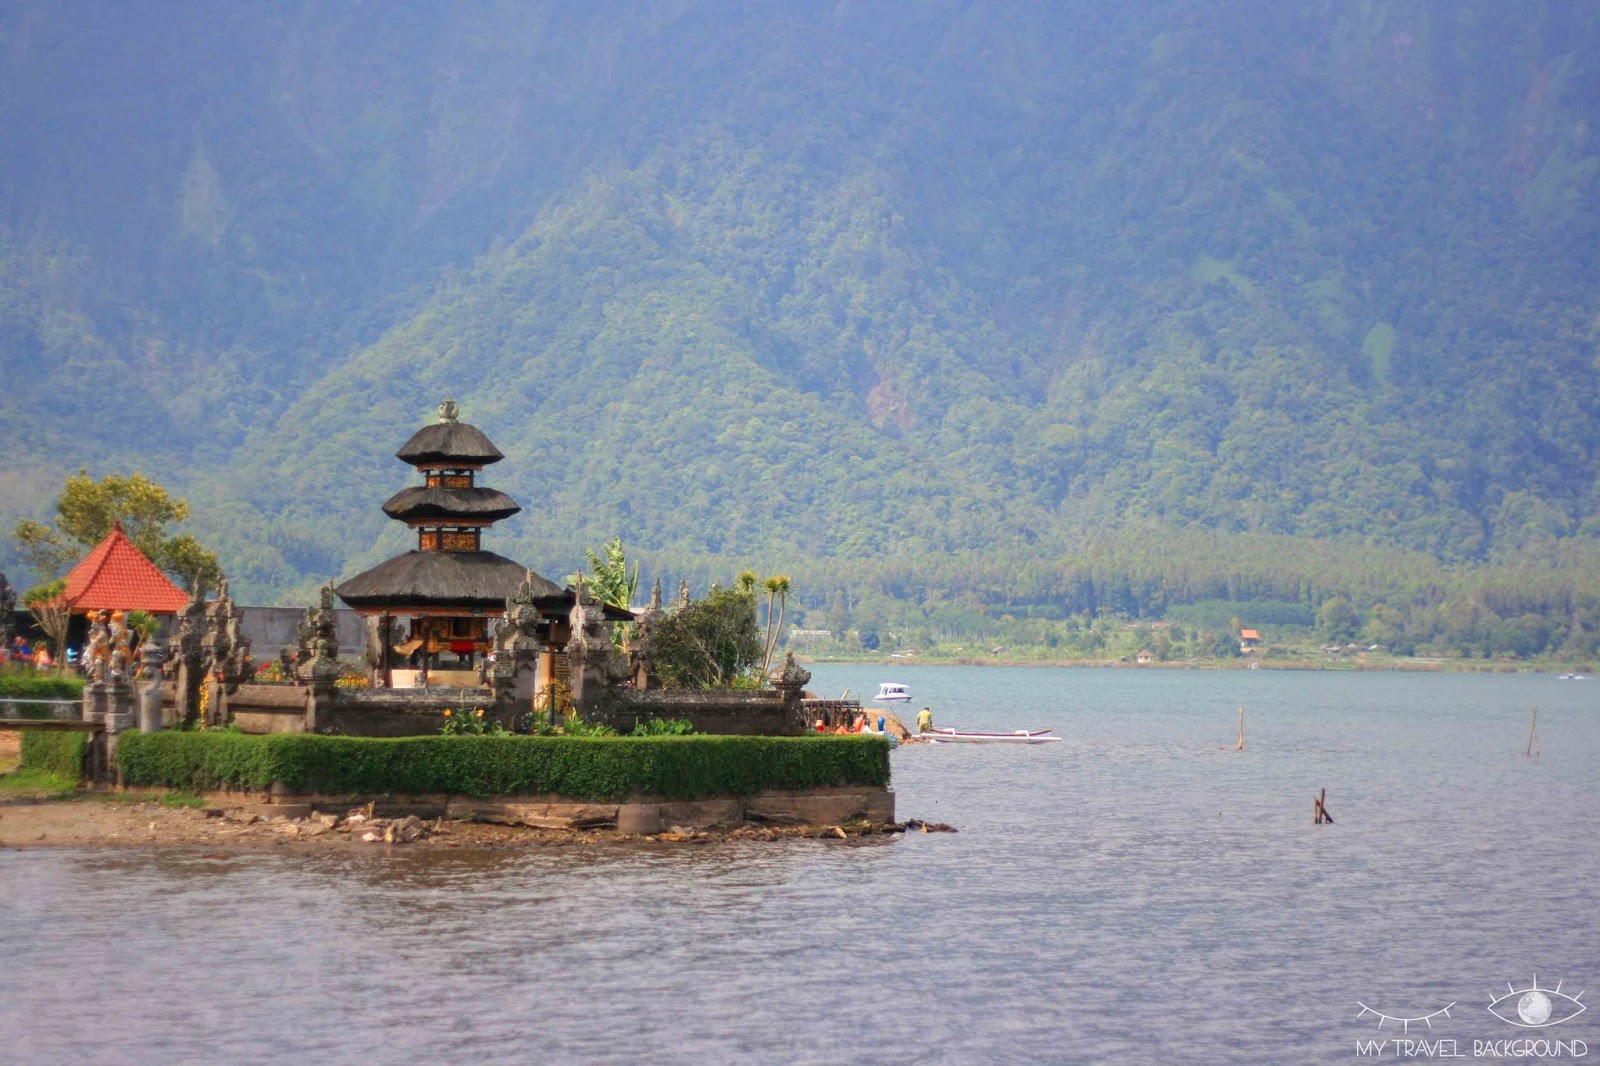 My Travel Background : que visiter dans le Nord de Bali? Le temple de Pura Ulun Danu Bratan